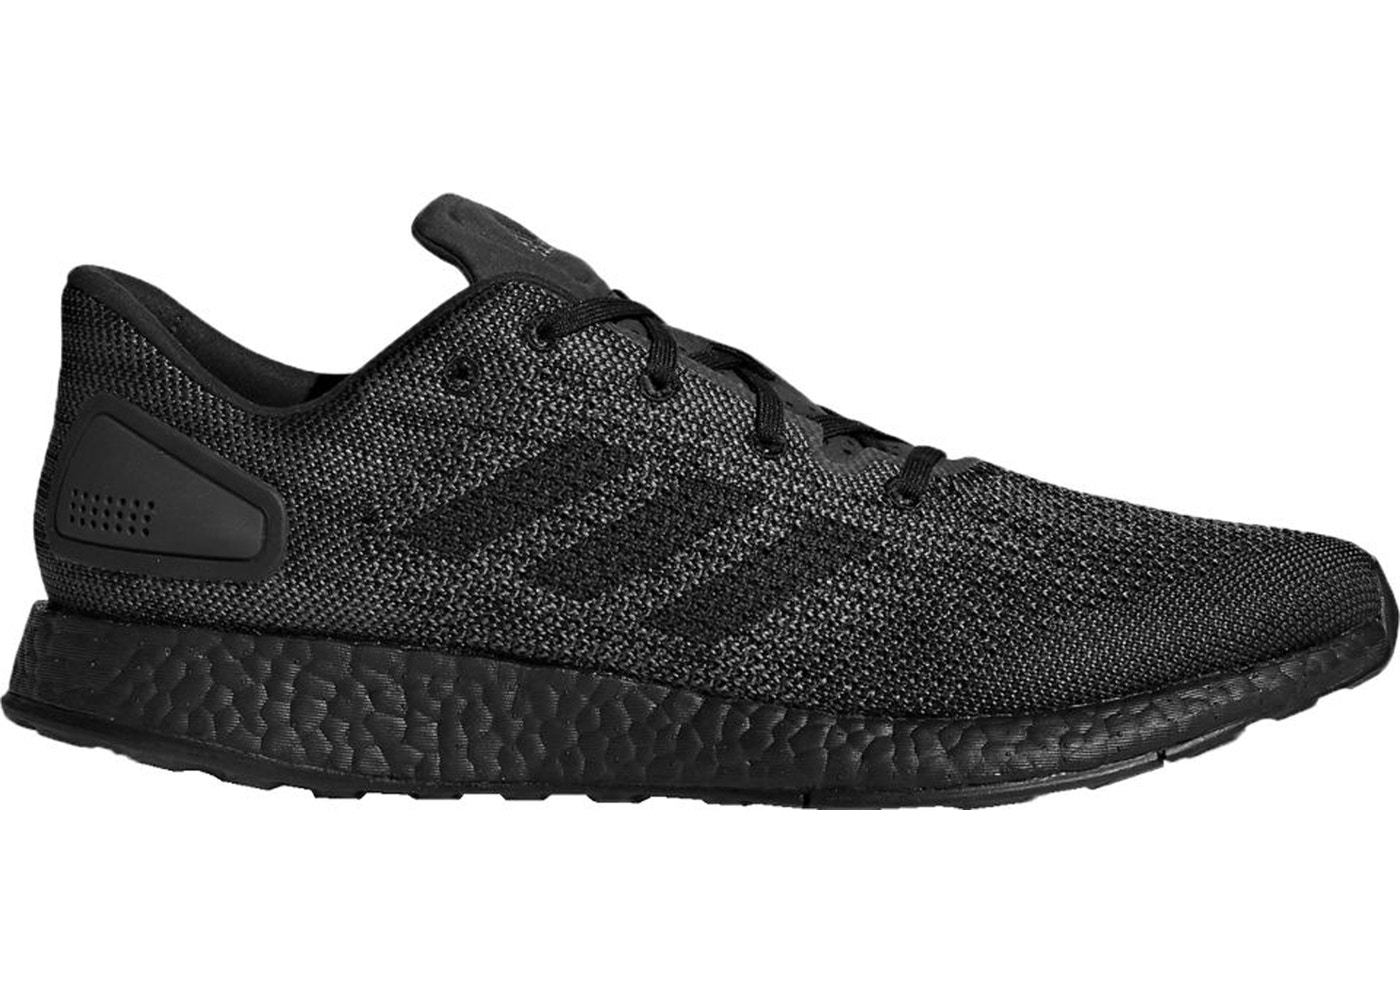 アディダス ADIDAS スニーカー 【 PUREBOOST DPR TRIPLE BLACK CORE 】 メンズ